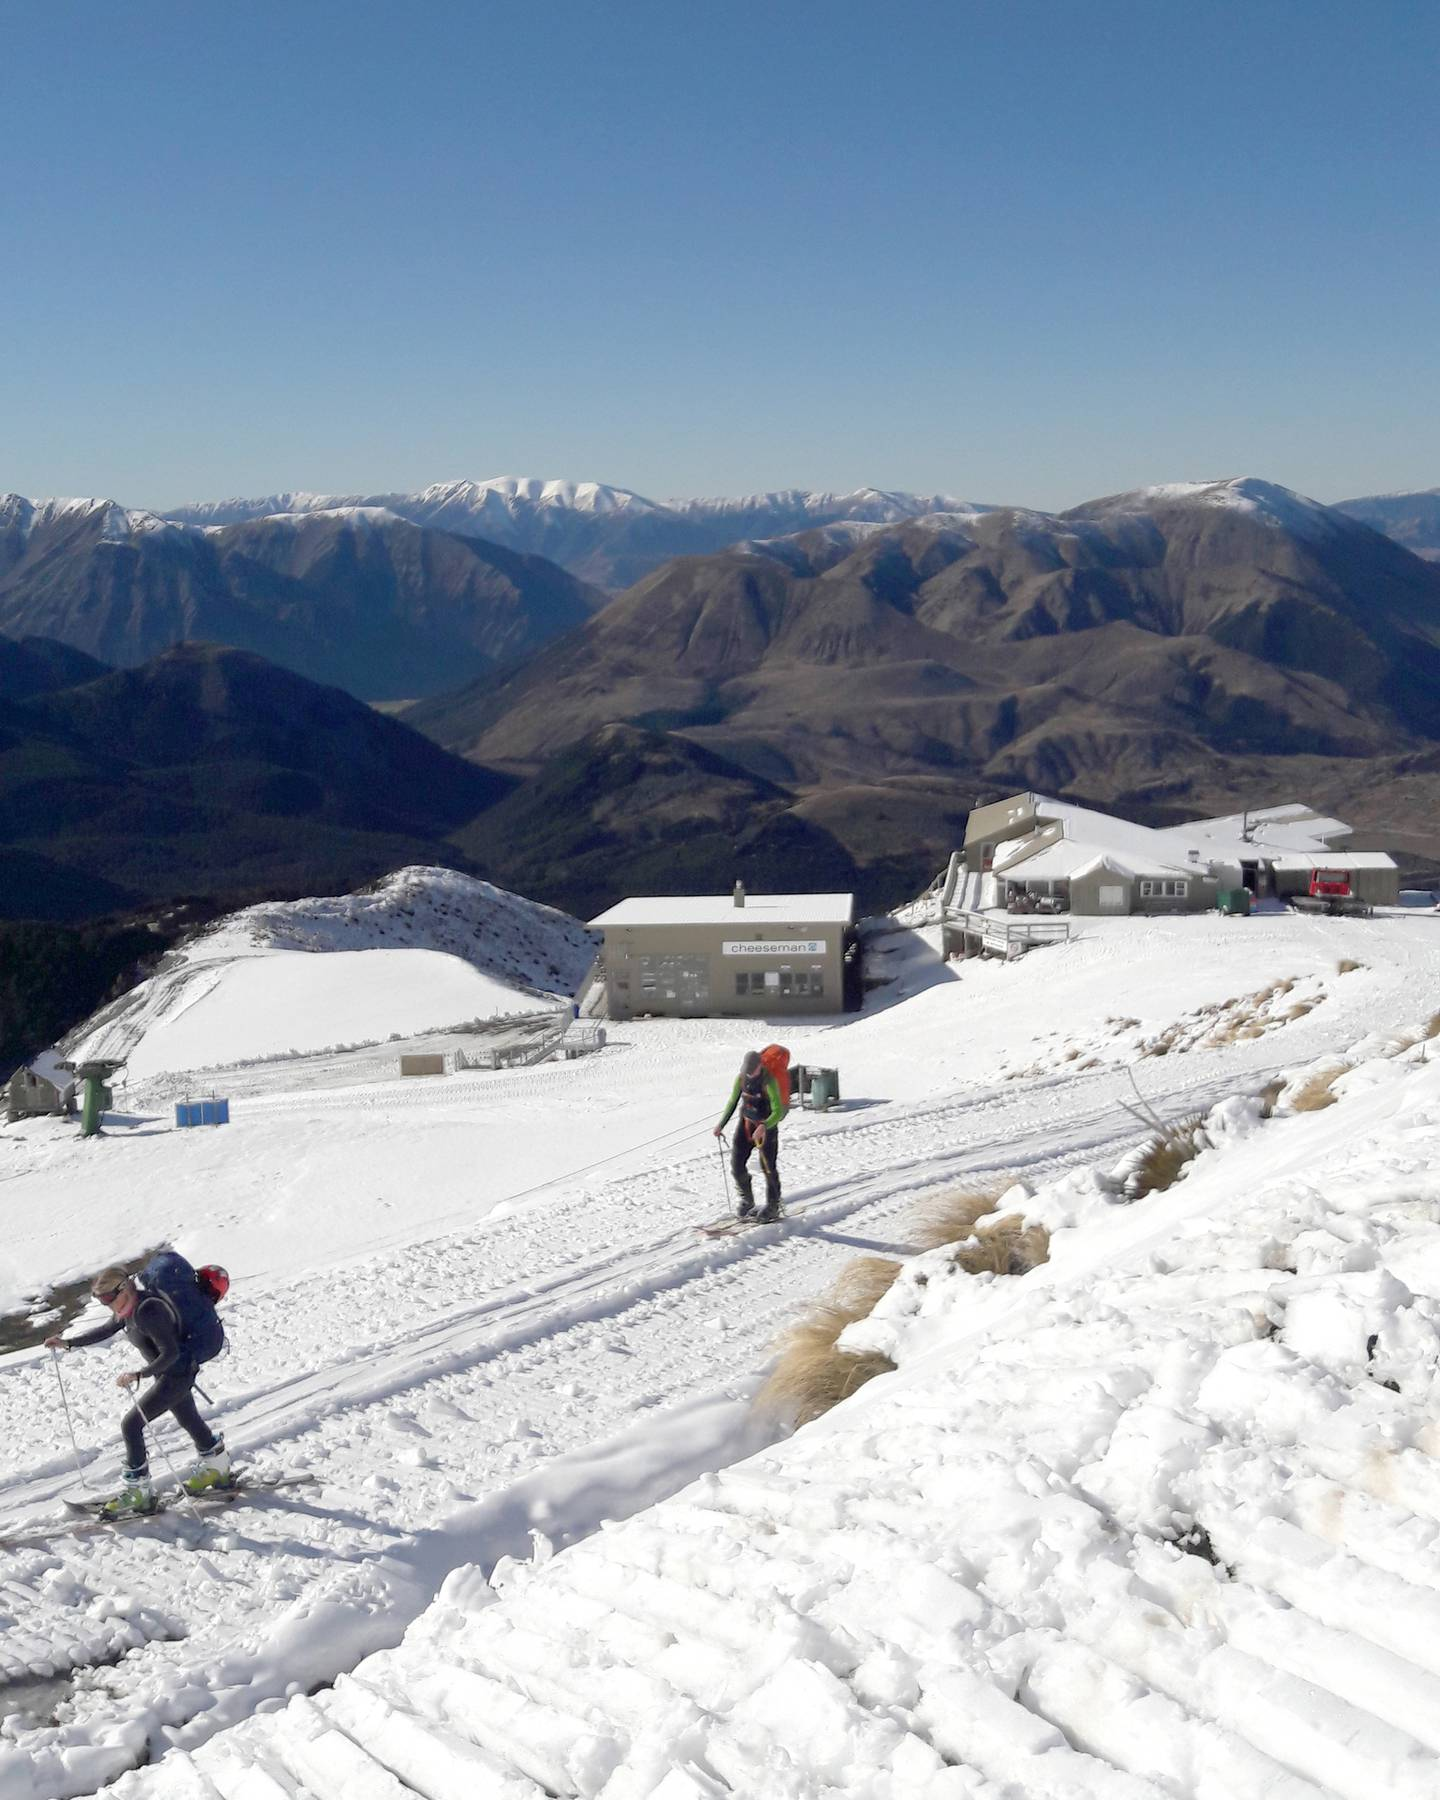 Tour skiers walk up to the snowline in the Cheeseman Ski Area. Photo: Thomas Bywater